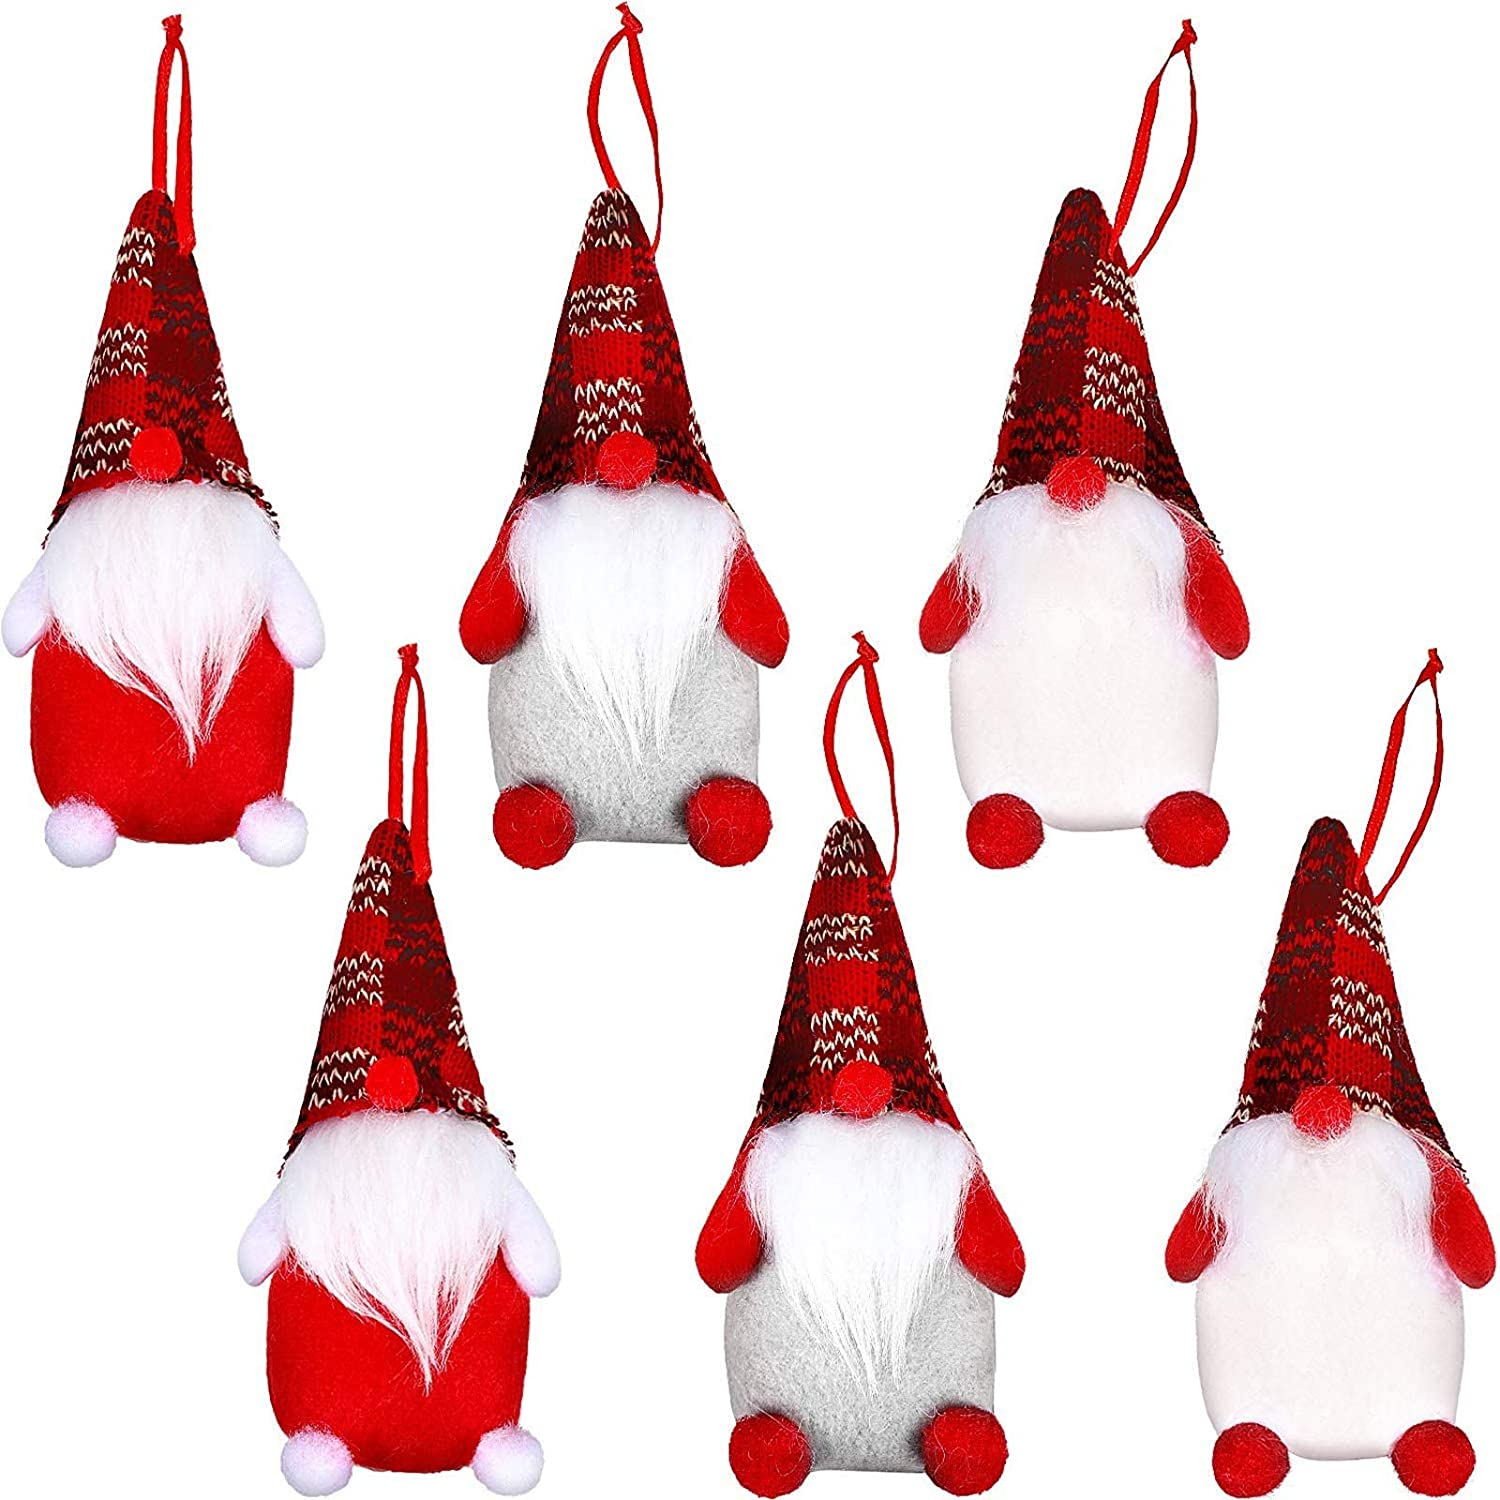 6 Pieces Gnome Christmas Ornaments Handmade Swedish Tomte Santa Plush Ornament for Home Holiday Christmas Hanging Decorations Xmas Gifts